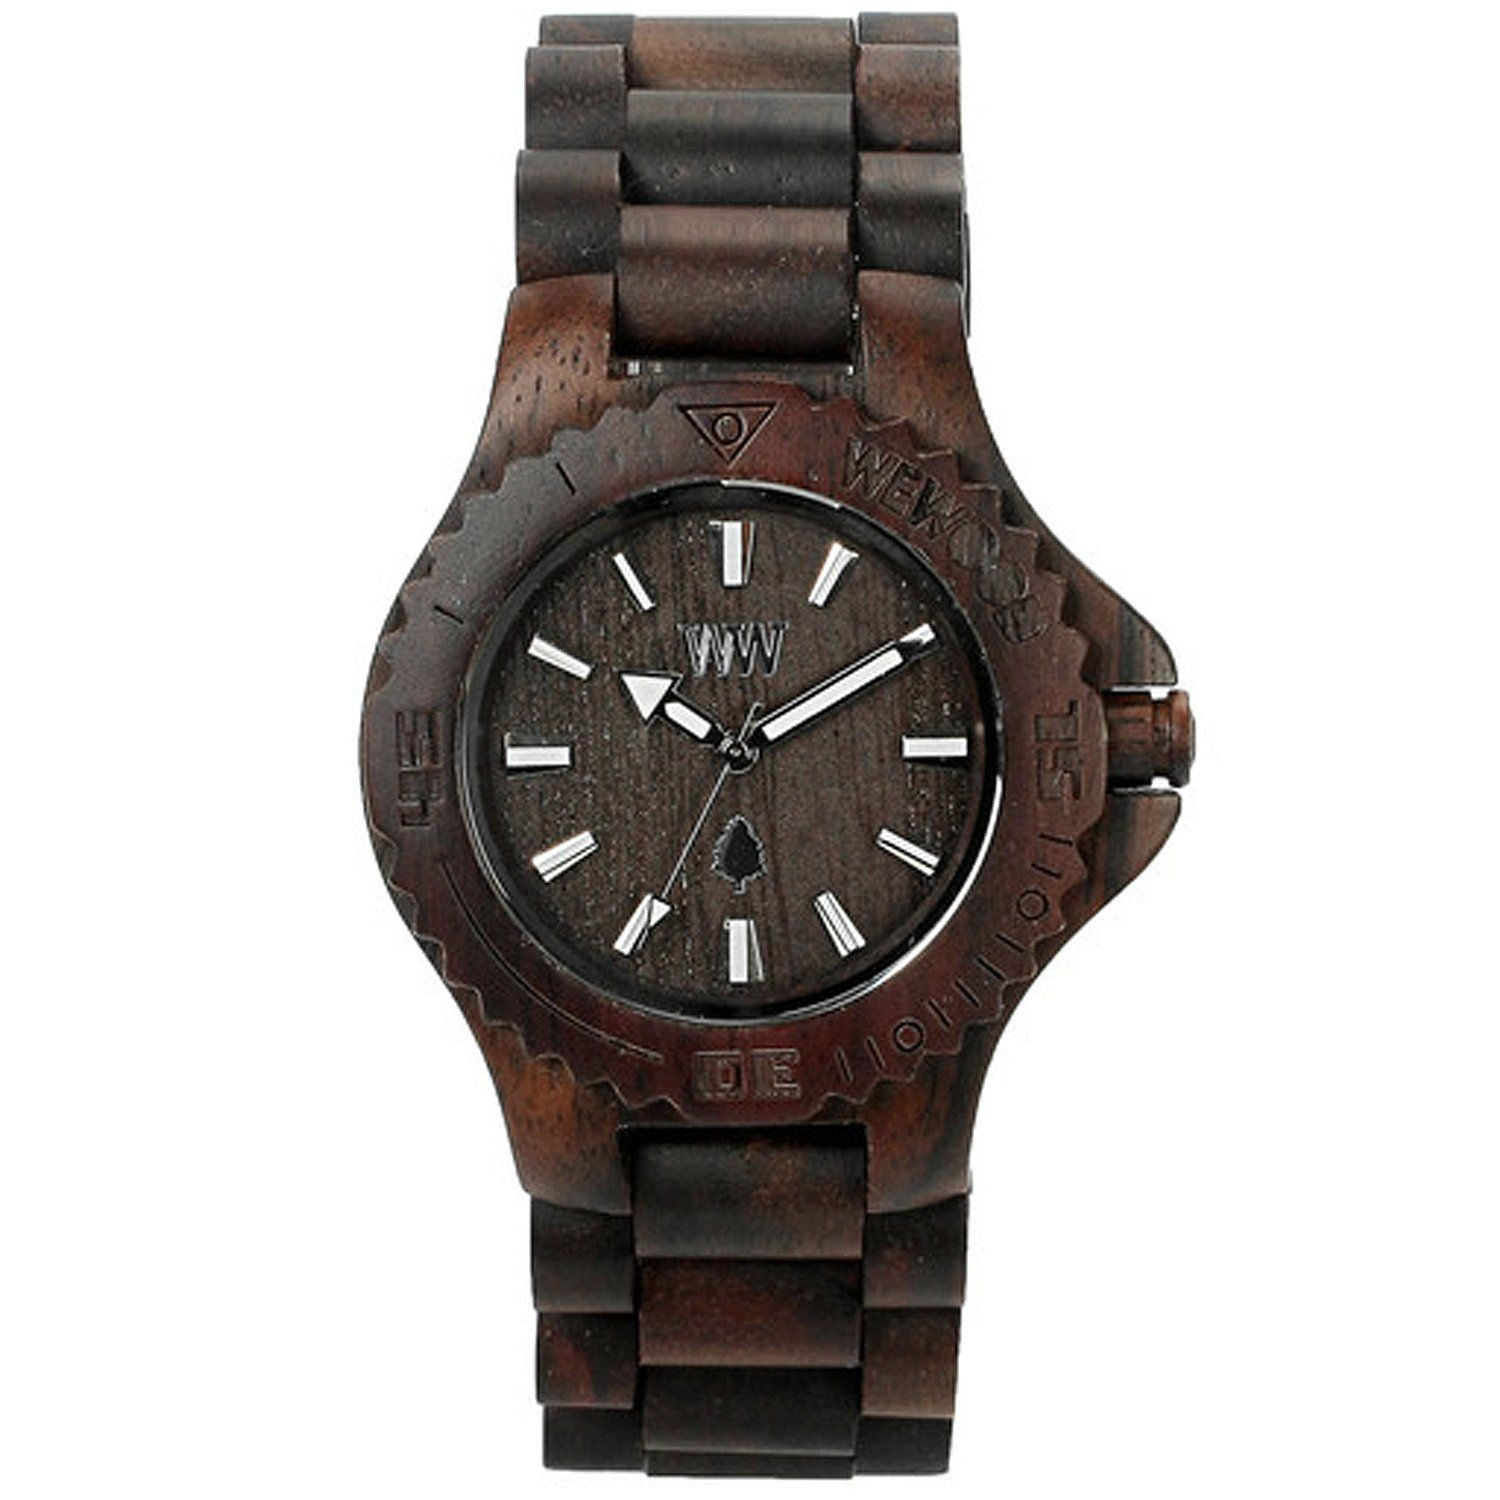 Wewood Date Watch Wooden Watch Wewood Watches Wewood